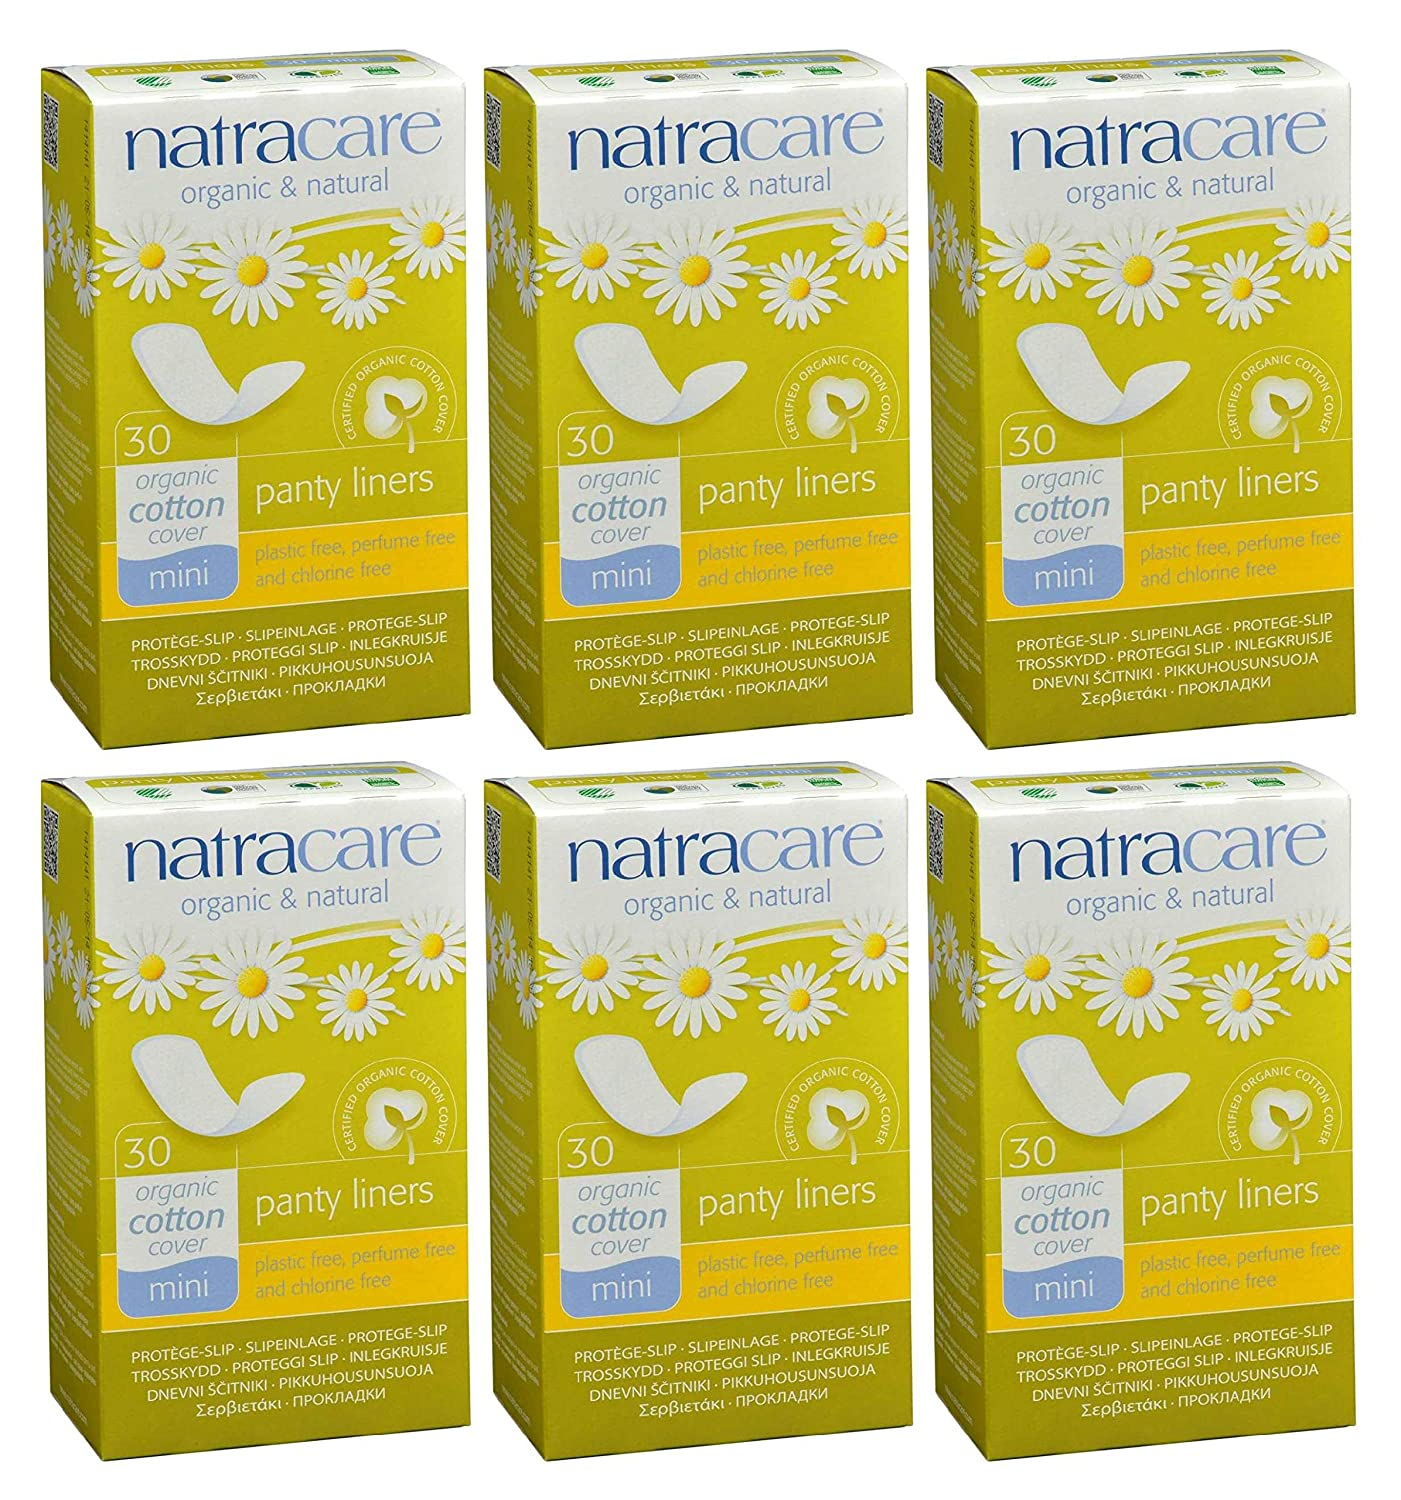 Natracare Panty Liners Mini 30 Count (6 Pack)